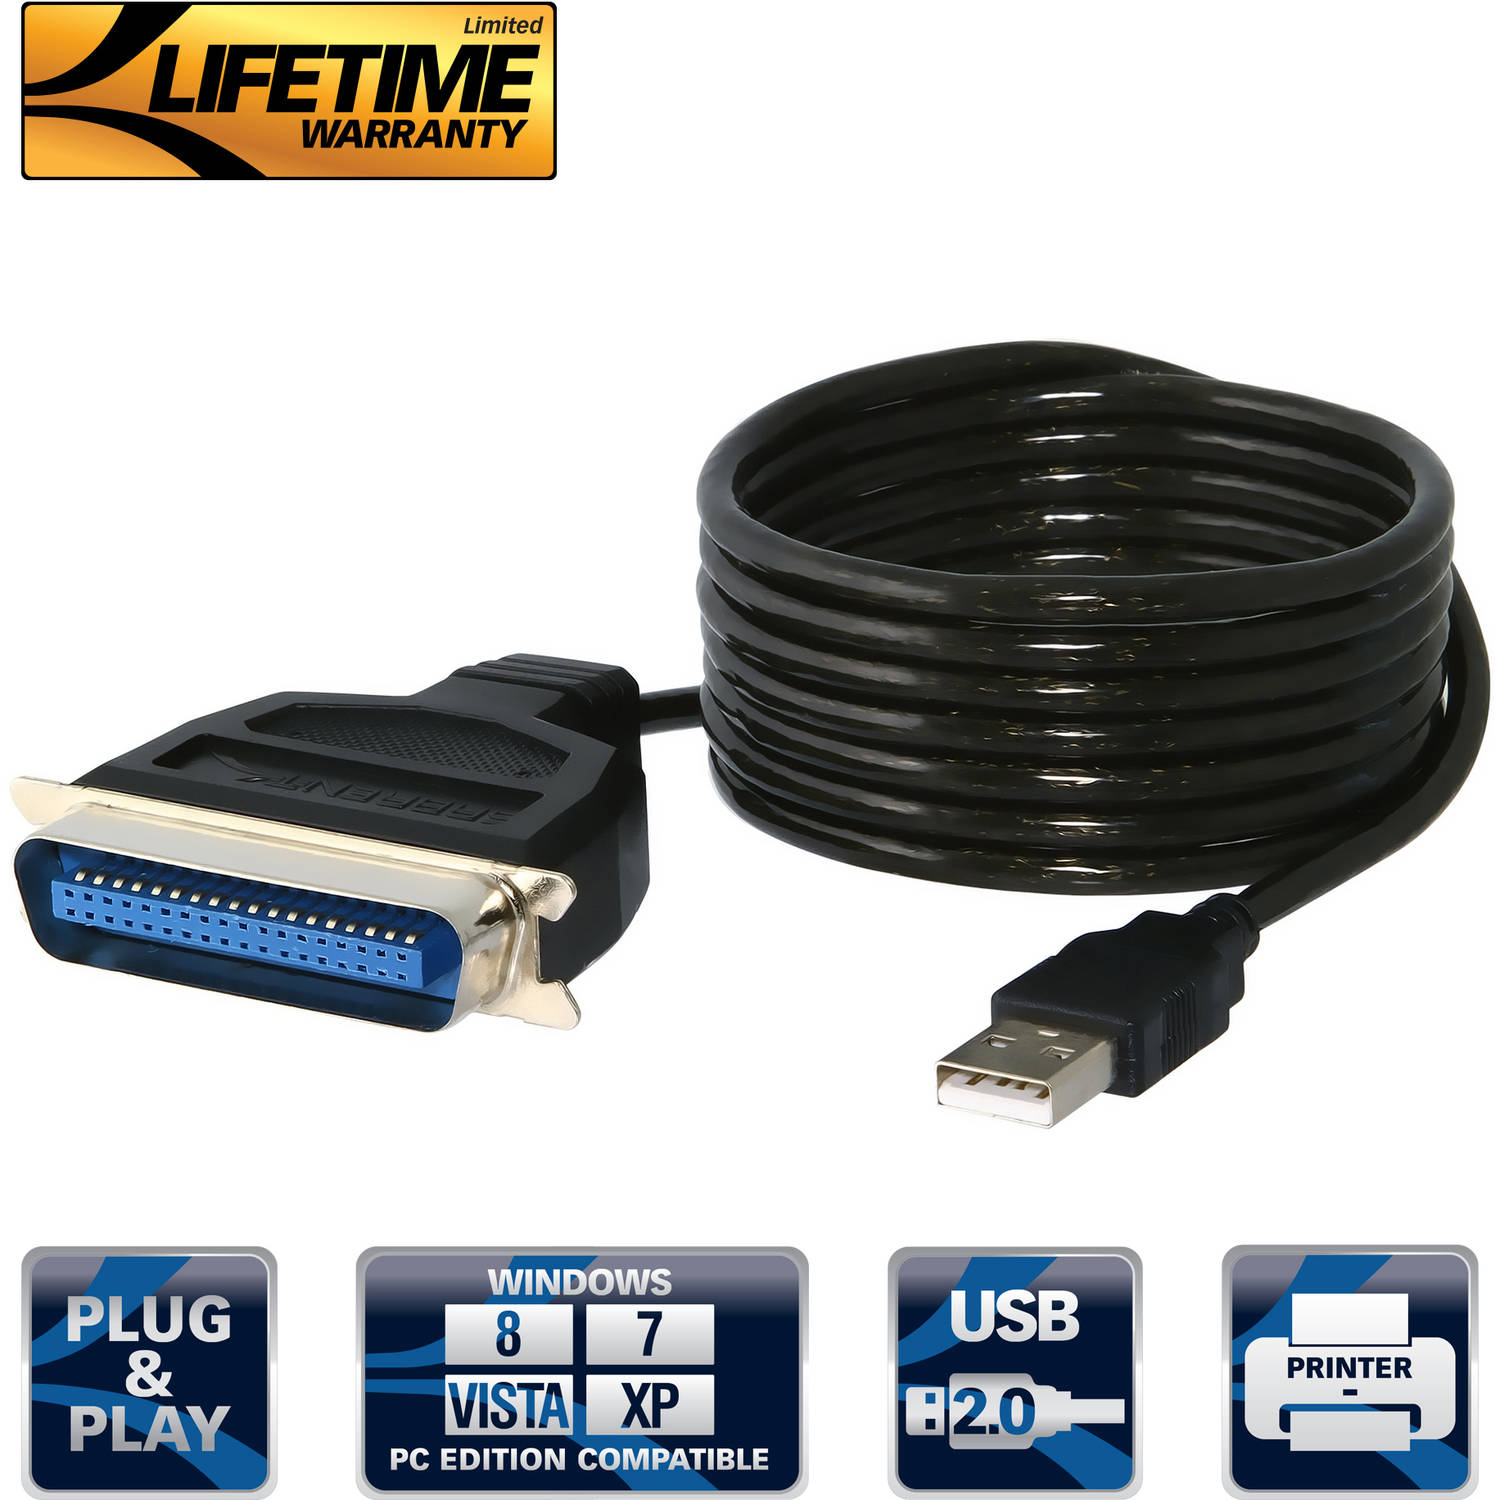 Sabrent SBT-UPPC USB to Parallel ( Printer IEEE 1284 ) Cable